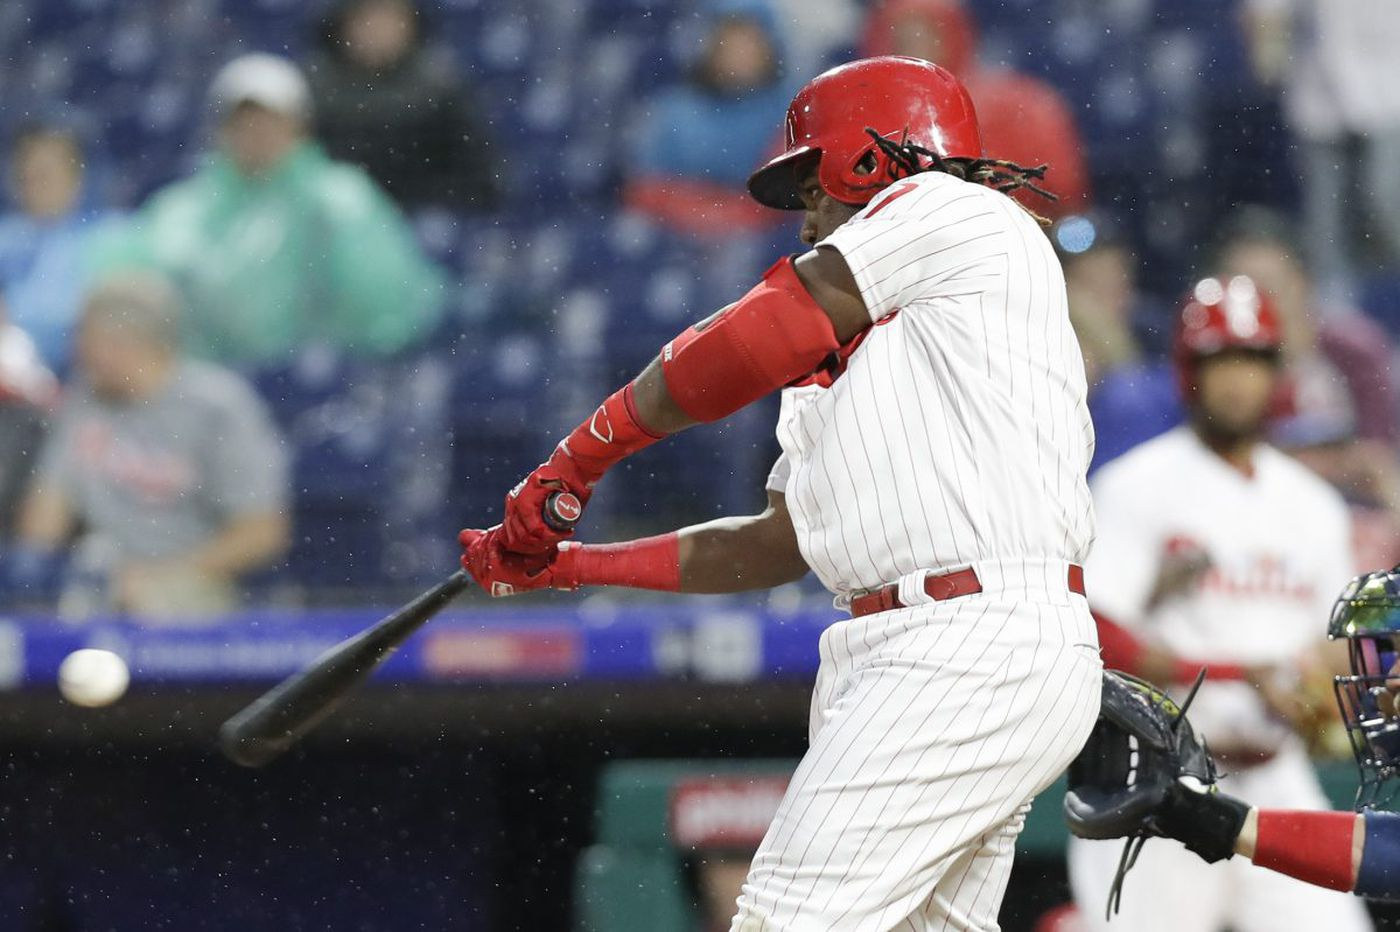 Phillies hope Maikel Franco's power could be unlocked with one swing adjustment | Scott Lauber